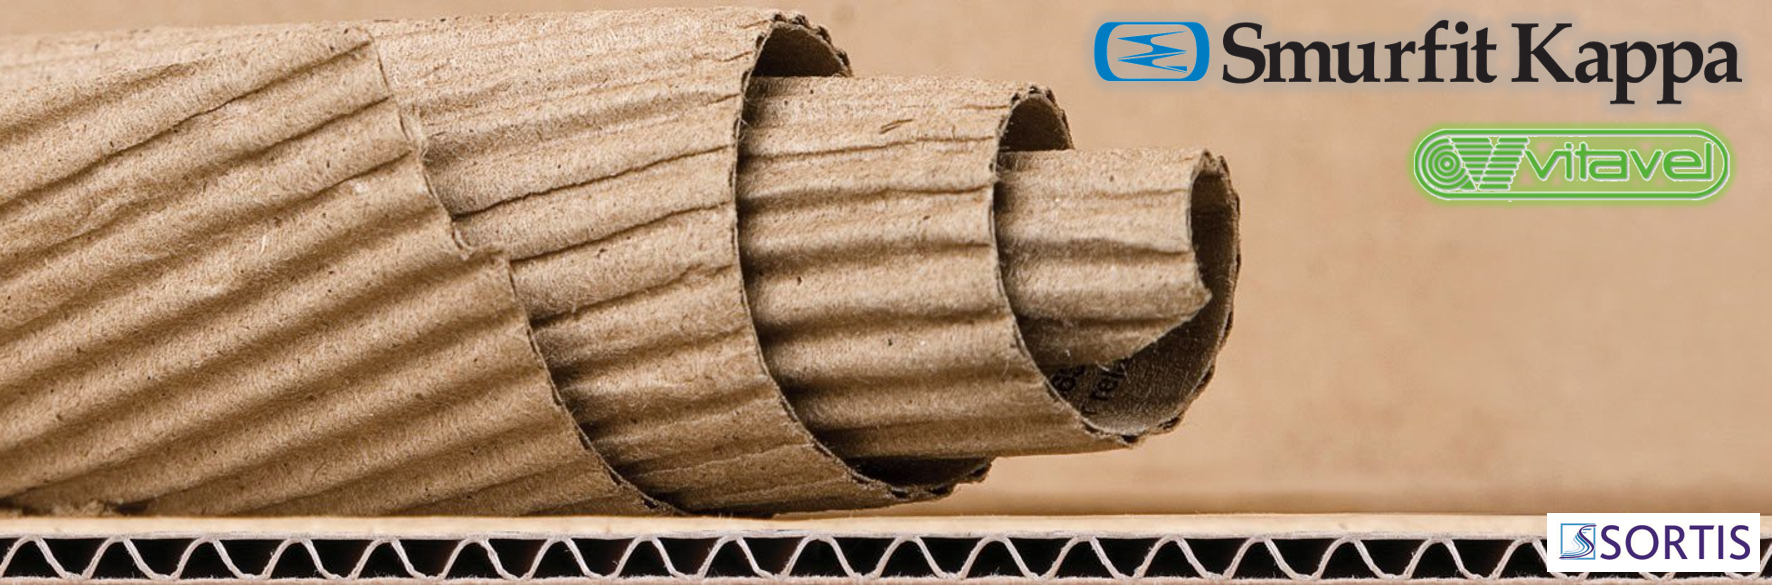 Smurfit Kappa Acquires the Bulgarian Corrugated Packaging Company Vitavel